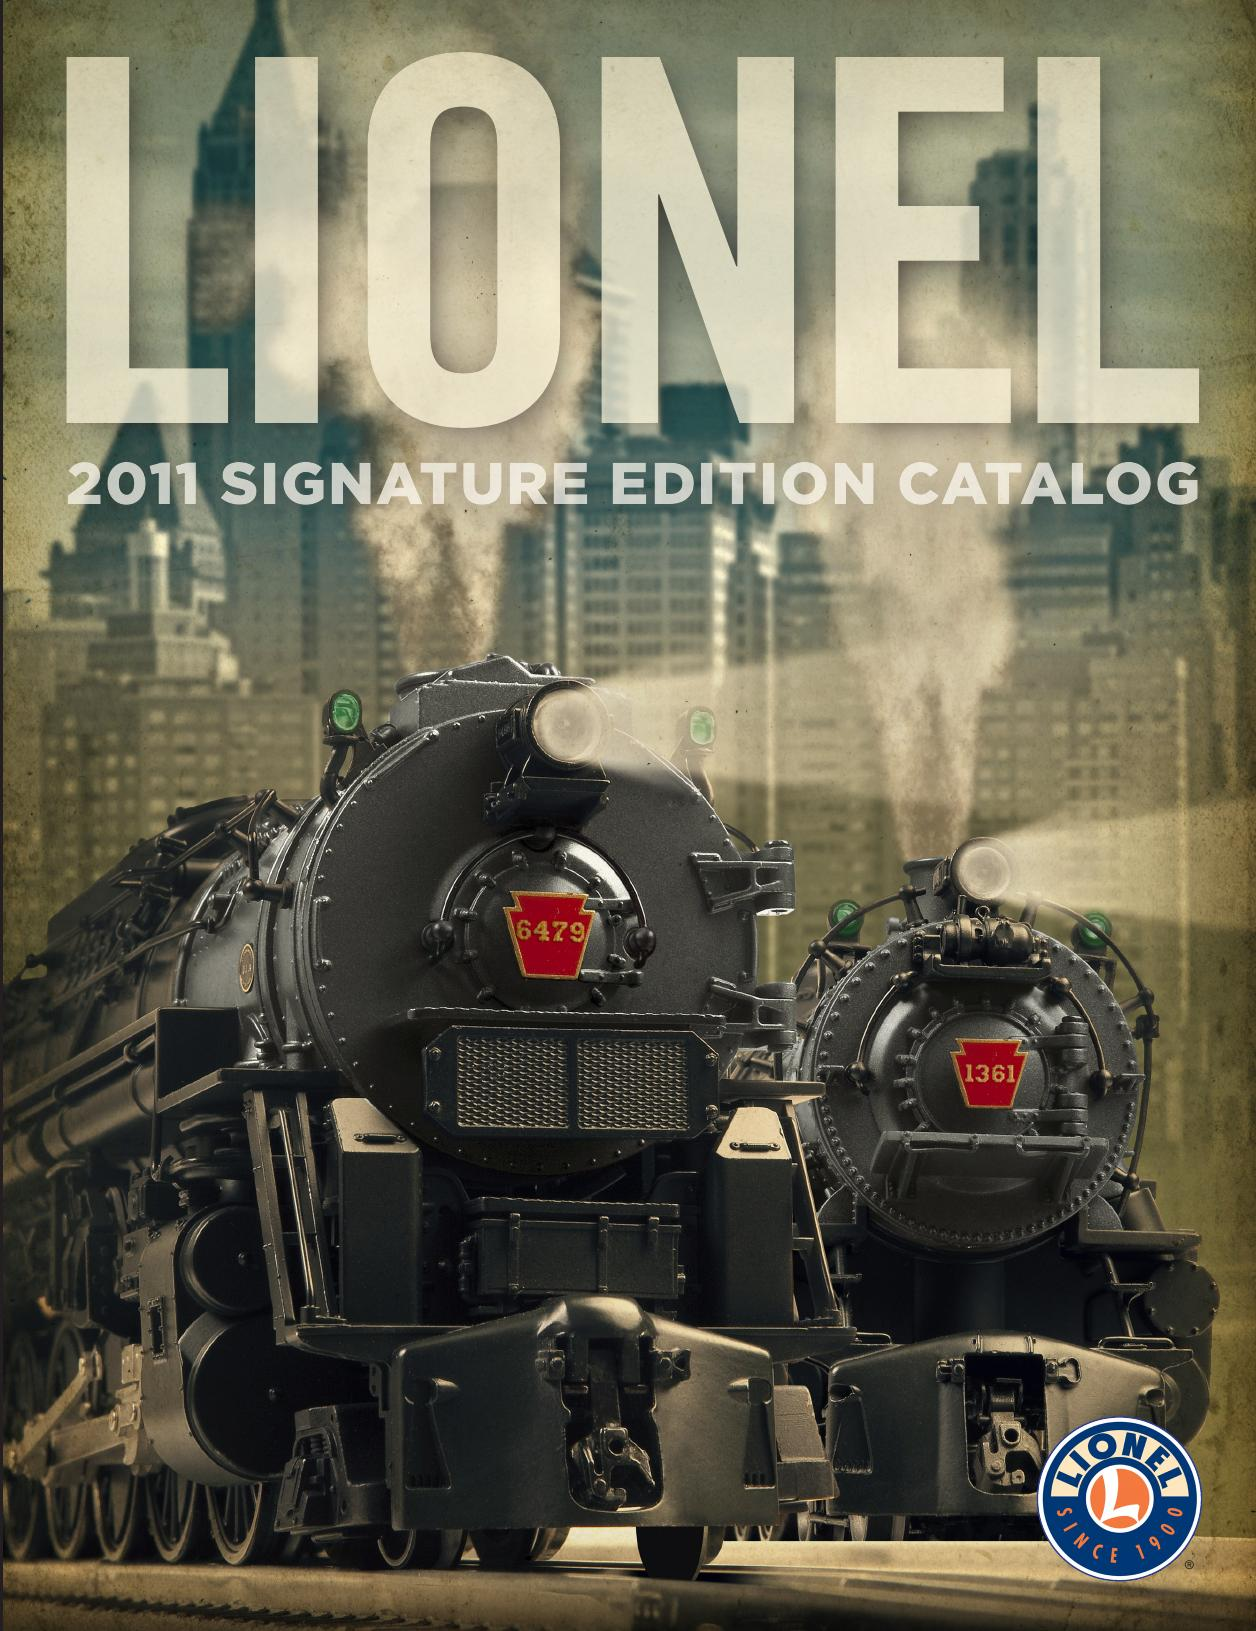 Lionel Catalogs - Signature Edition 2011